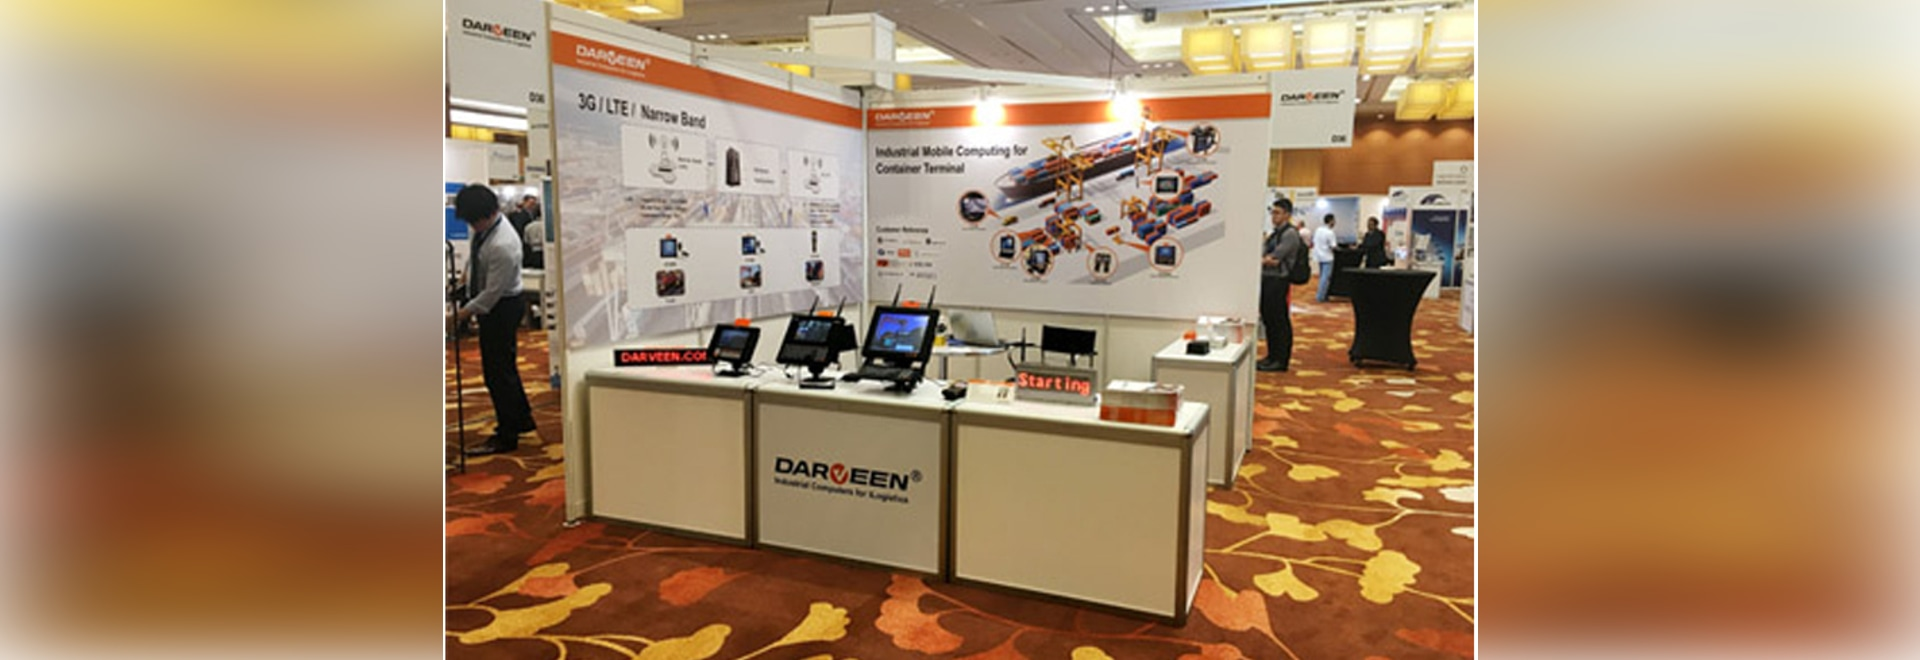 Darveen Attended Exhibition in Singapore 2017